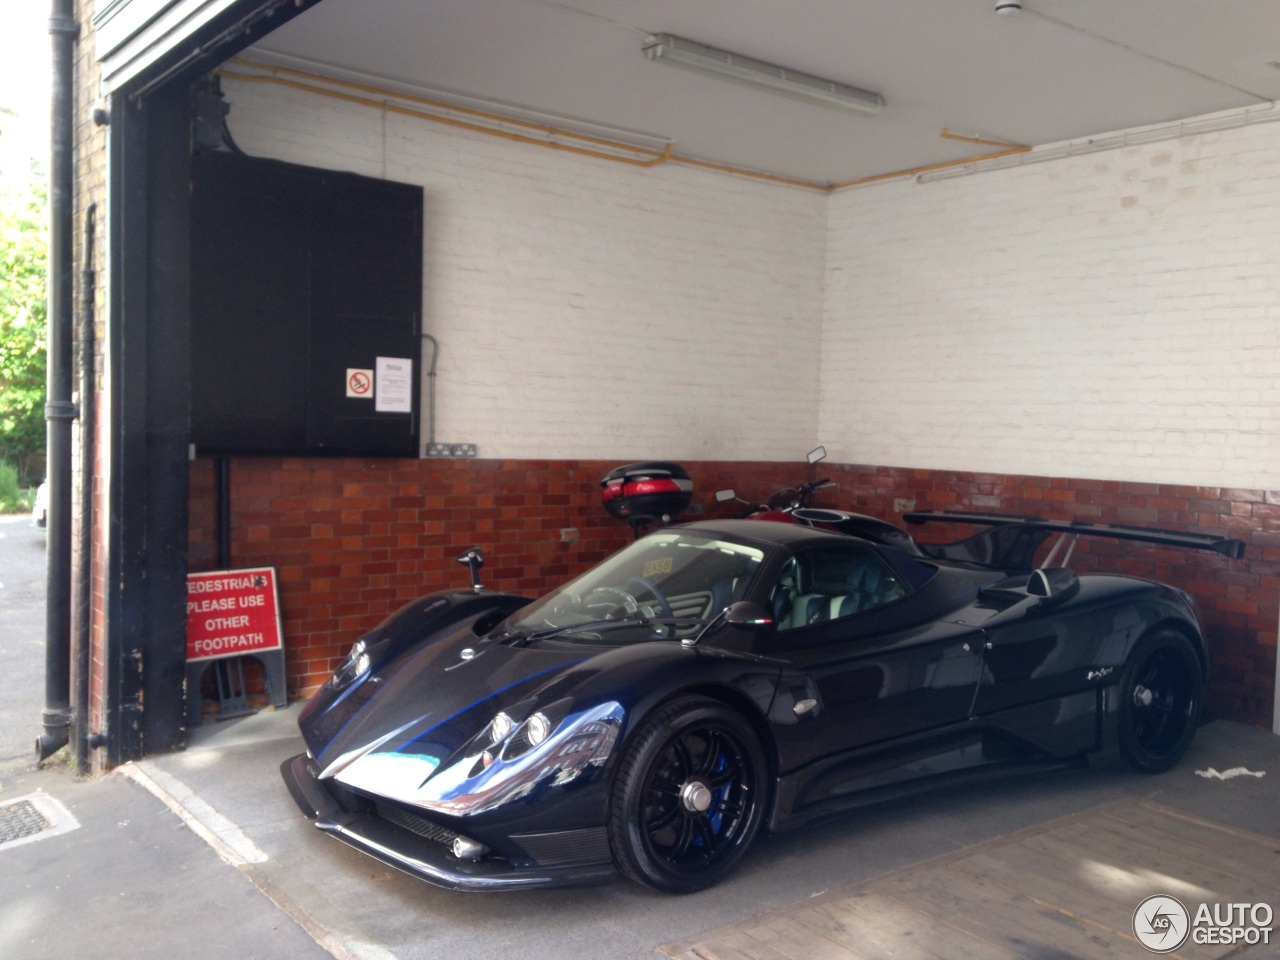 pagani zonda 760 vr roadster - 28 may 2015 - autogespot